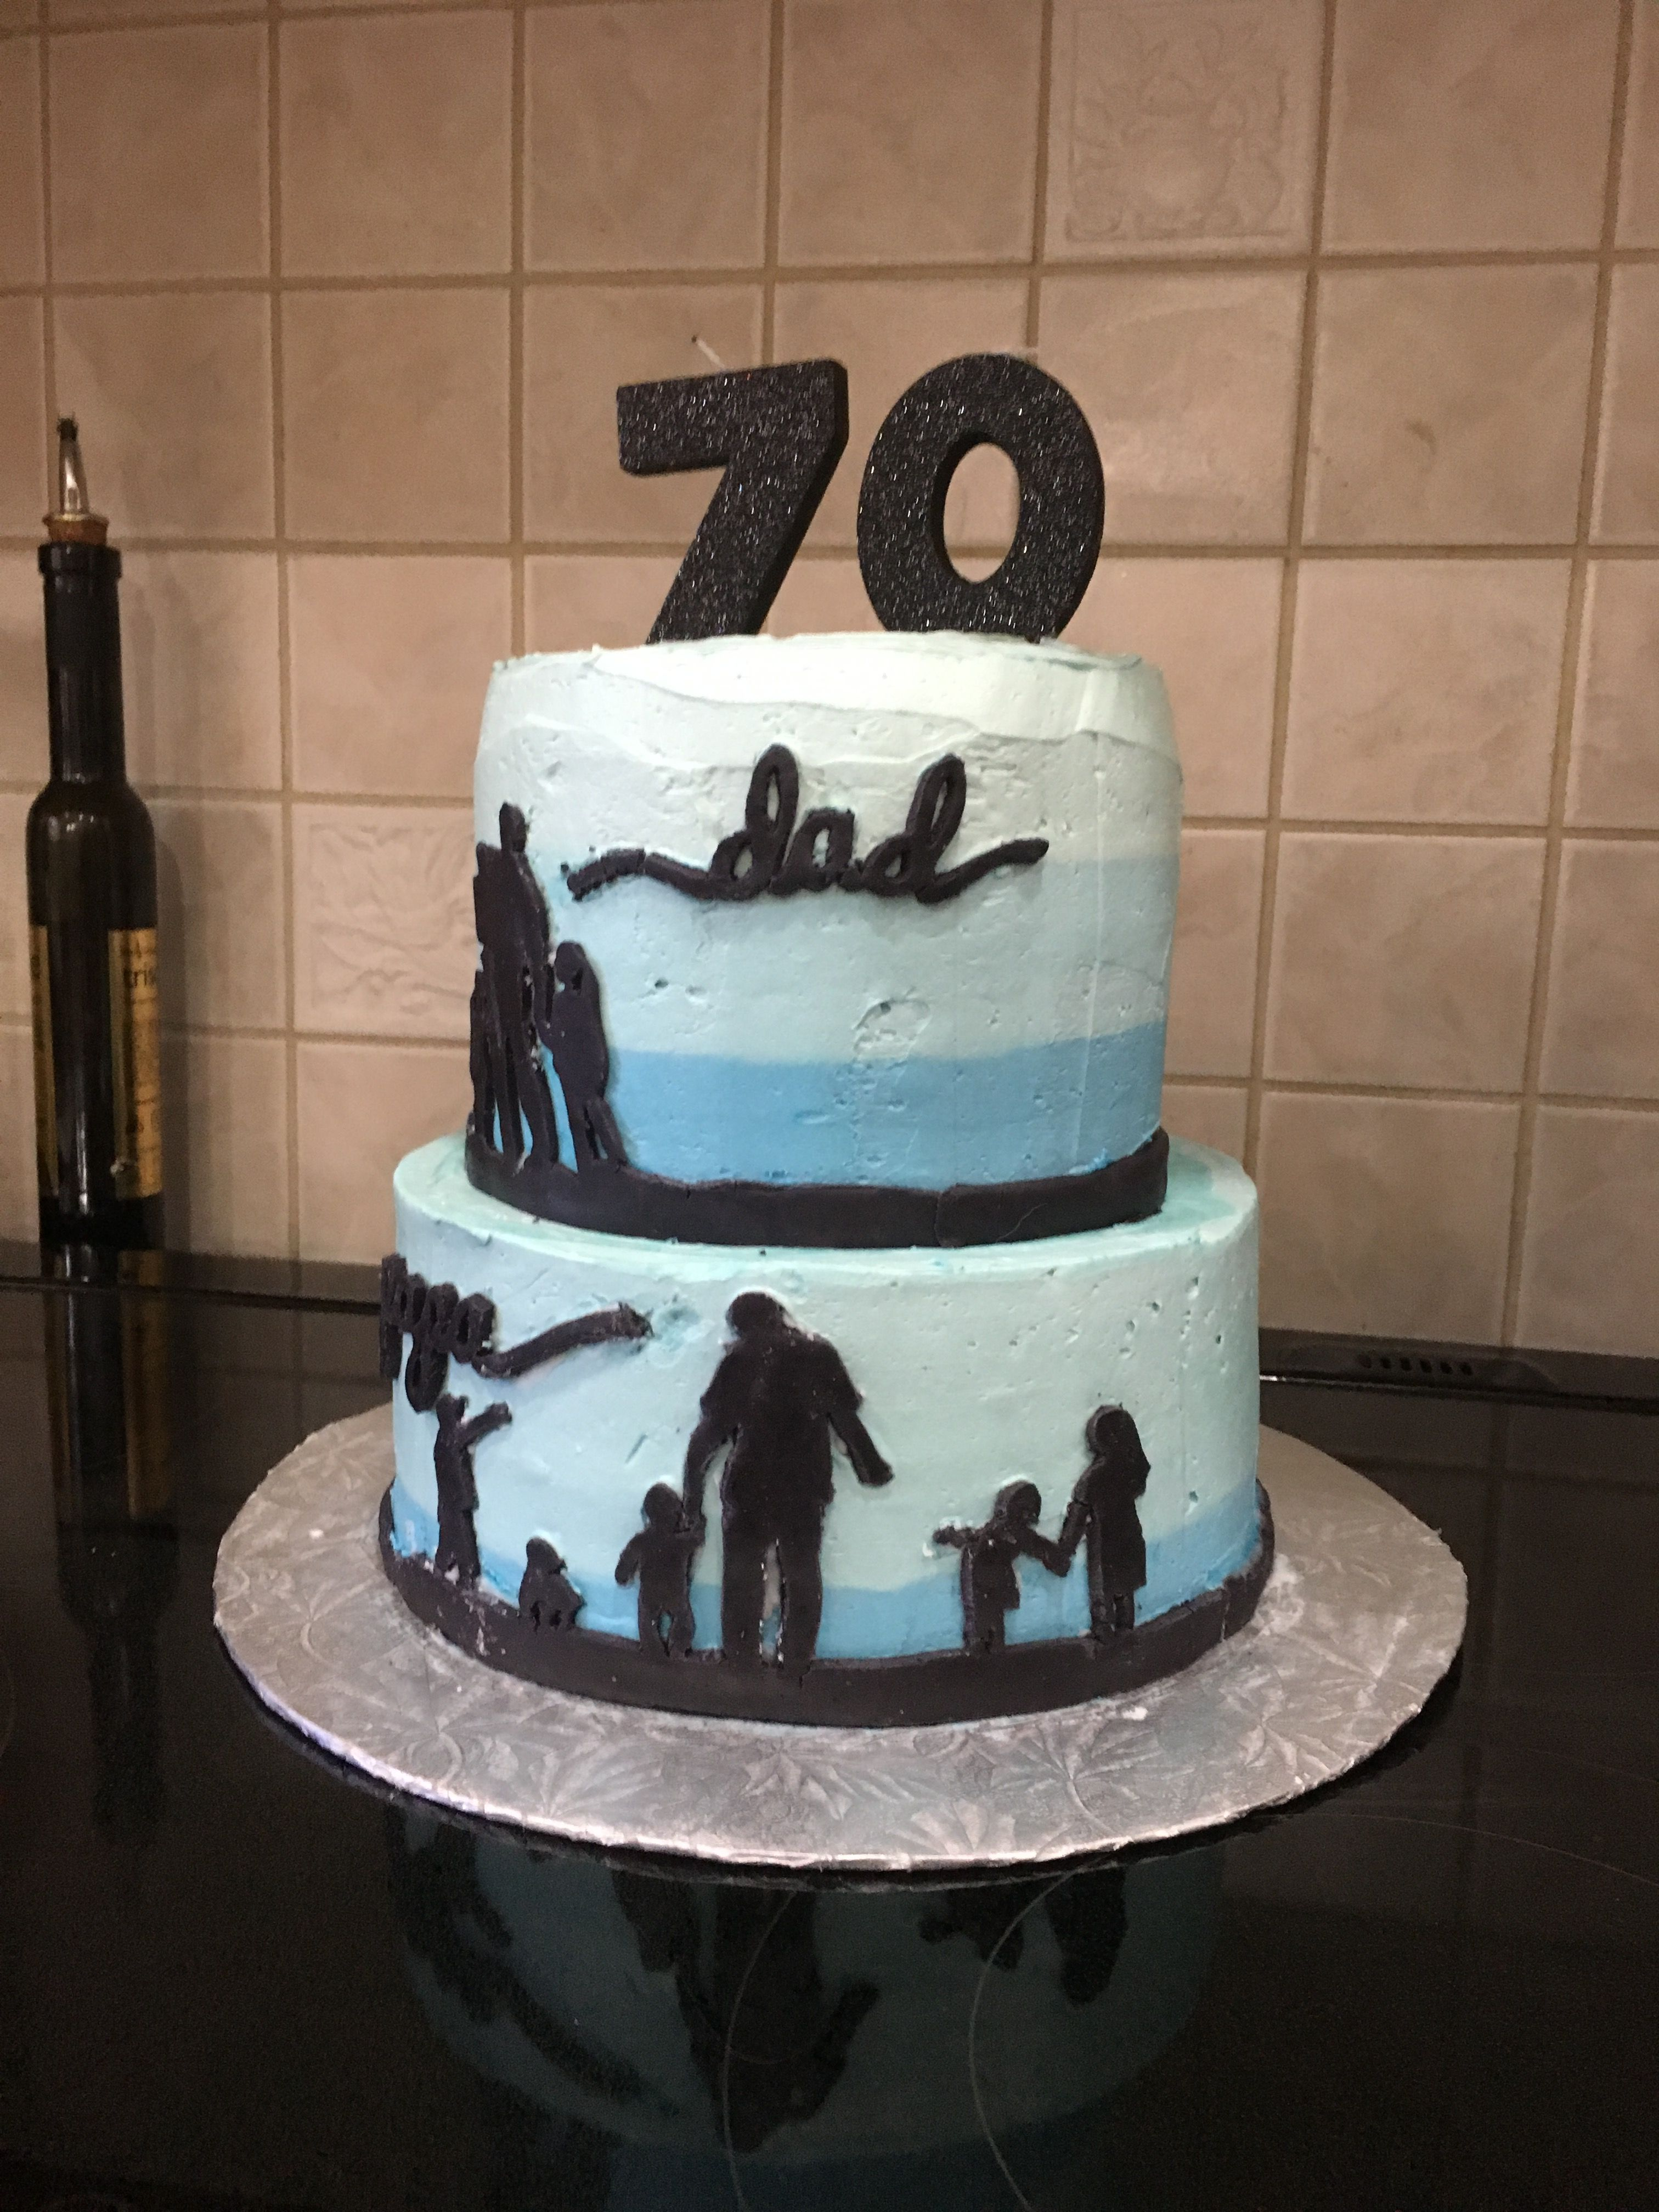 70th Birthday Cake Silhouette Cake Father S Day Cake Idea With